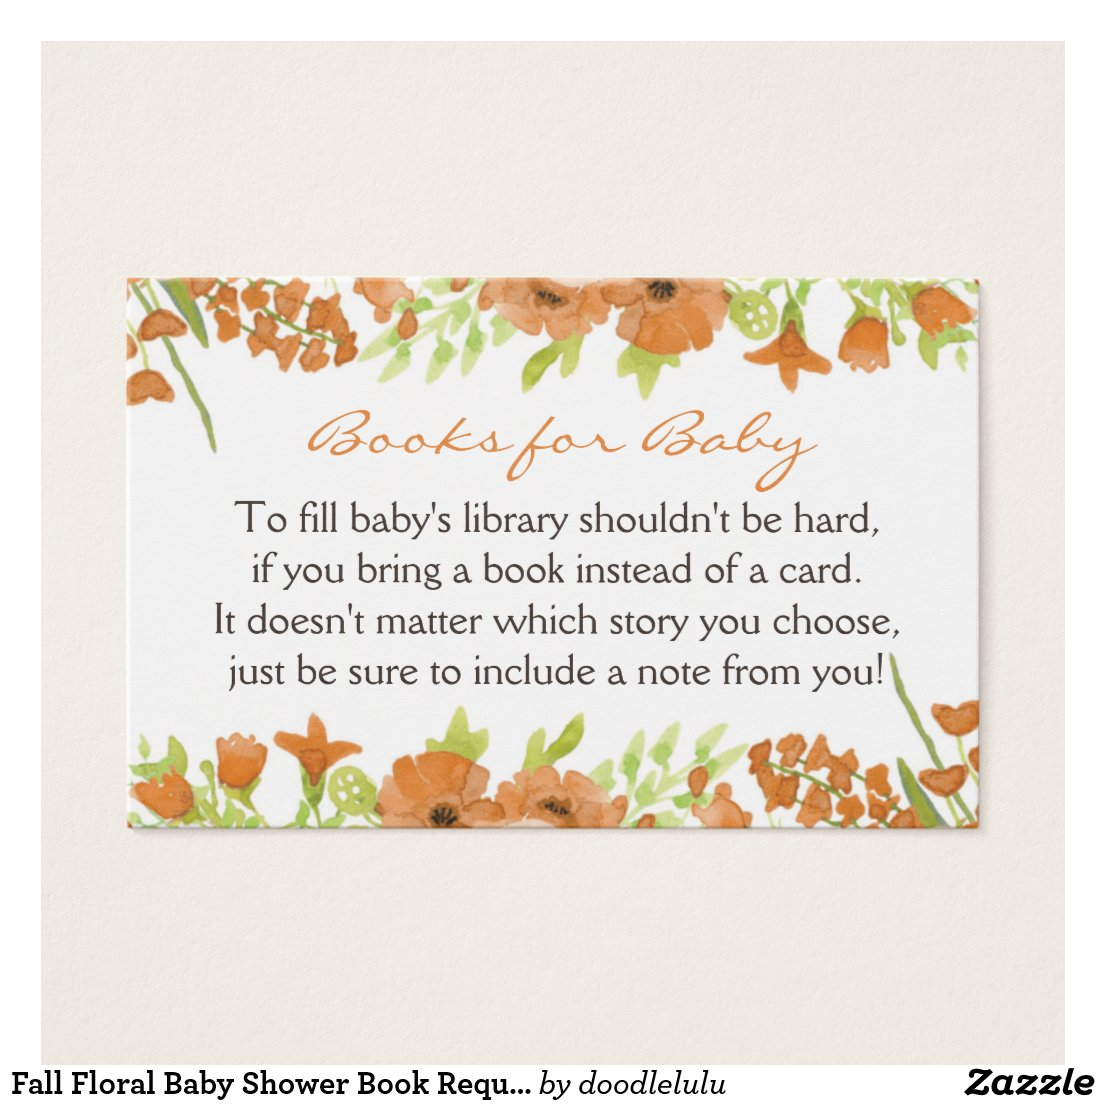 Fall Floral Baby Shower Book Request Card